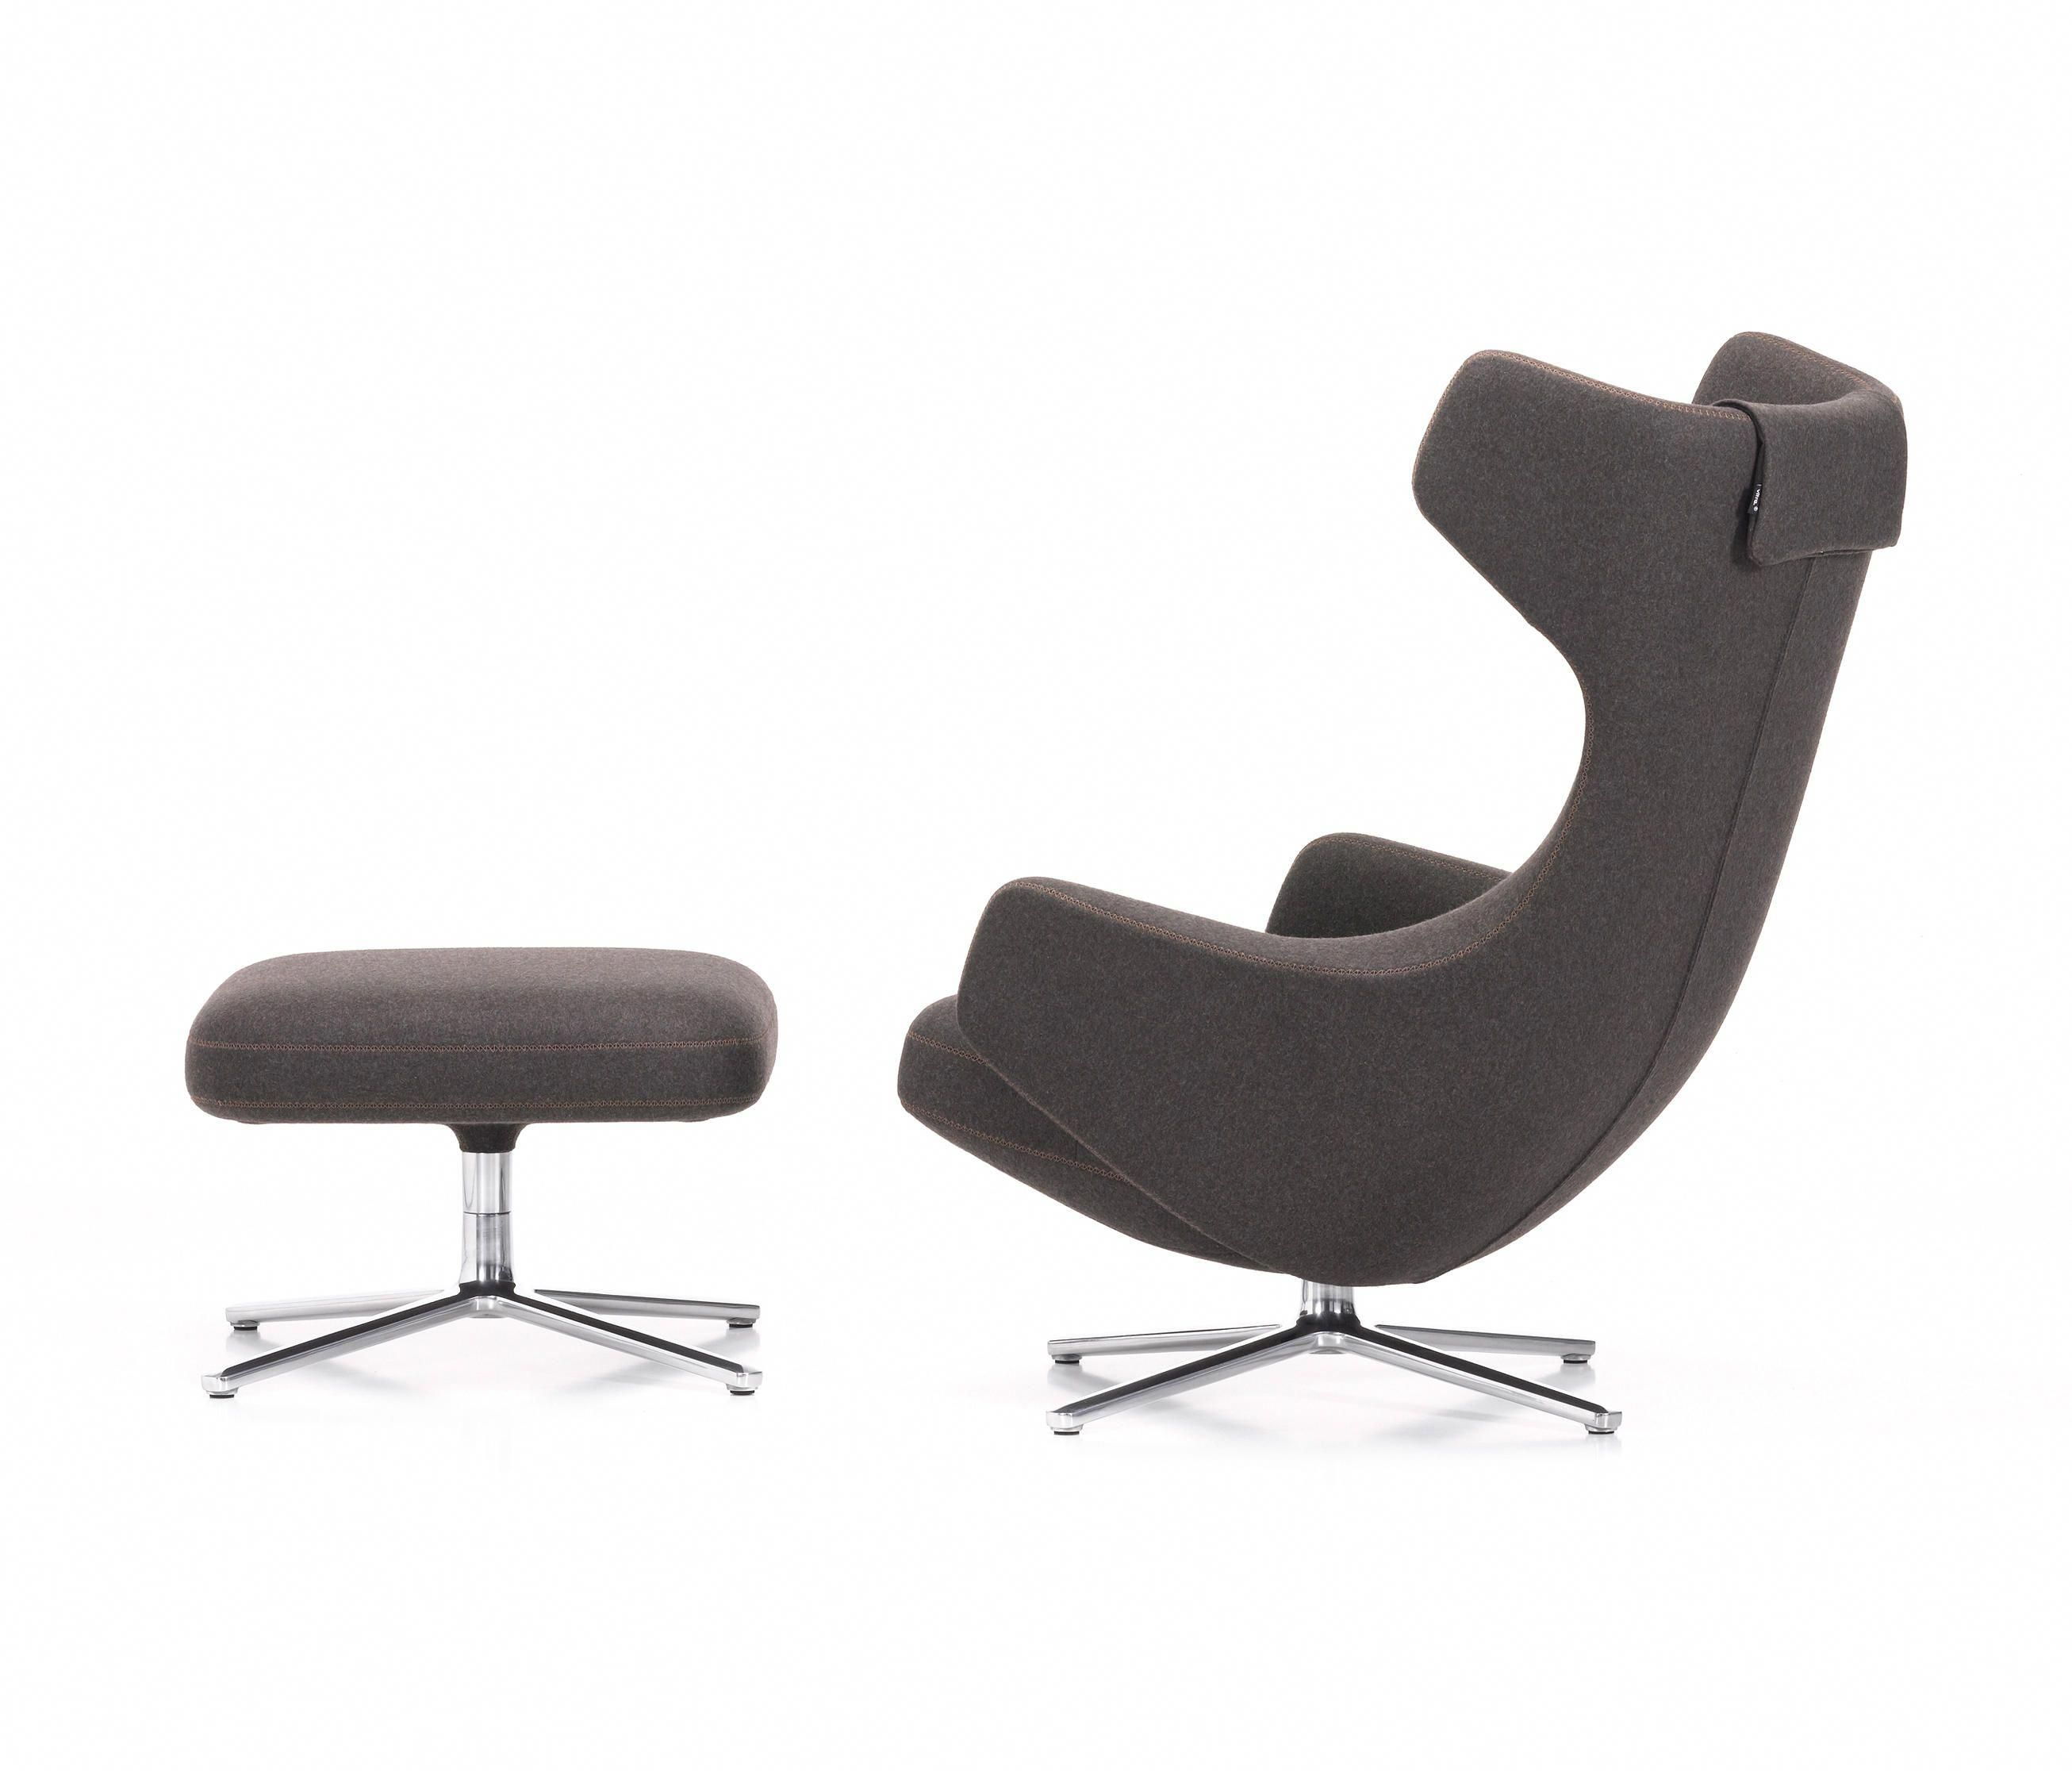 vitra lounge chair office chairs for back support grand repos ottoman by swivelreclinerchairs